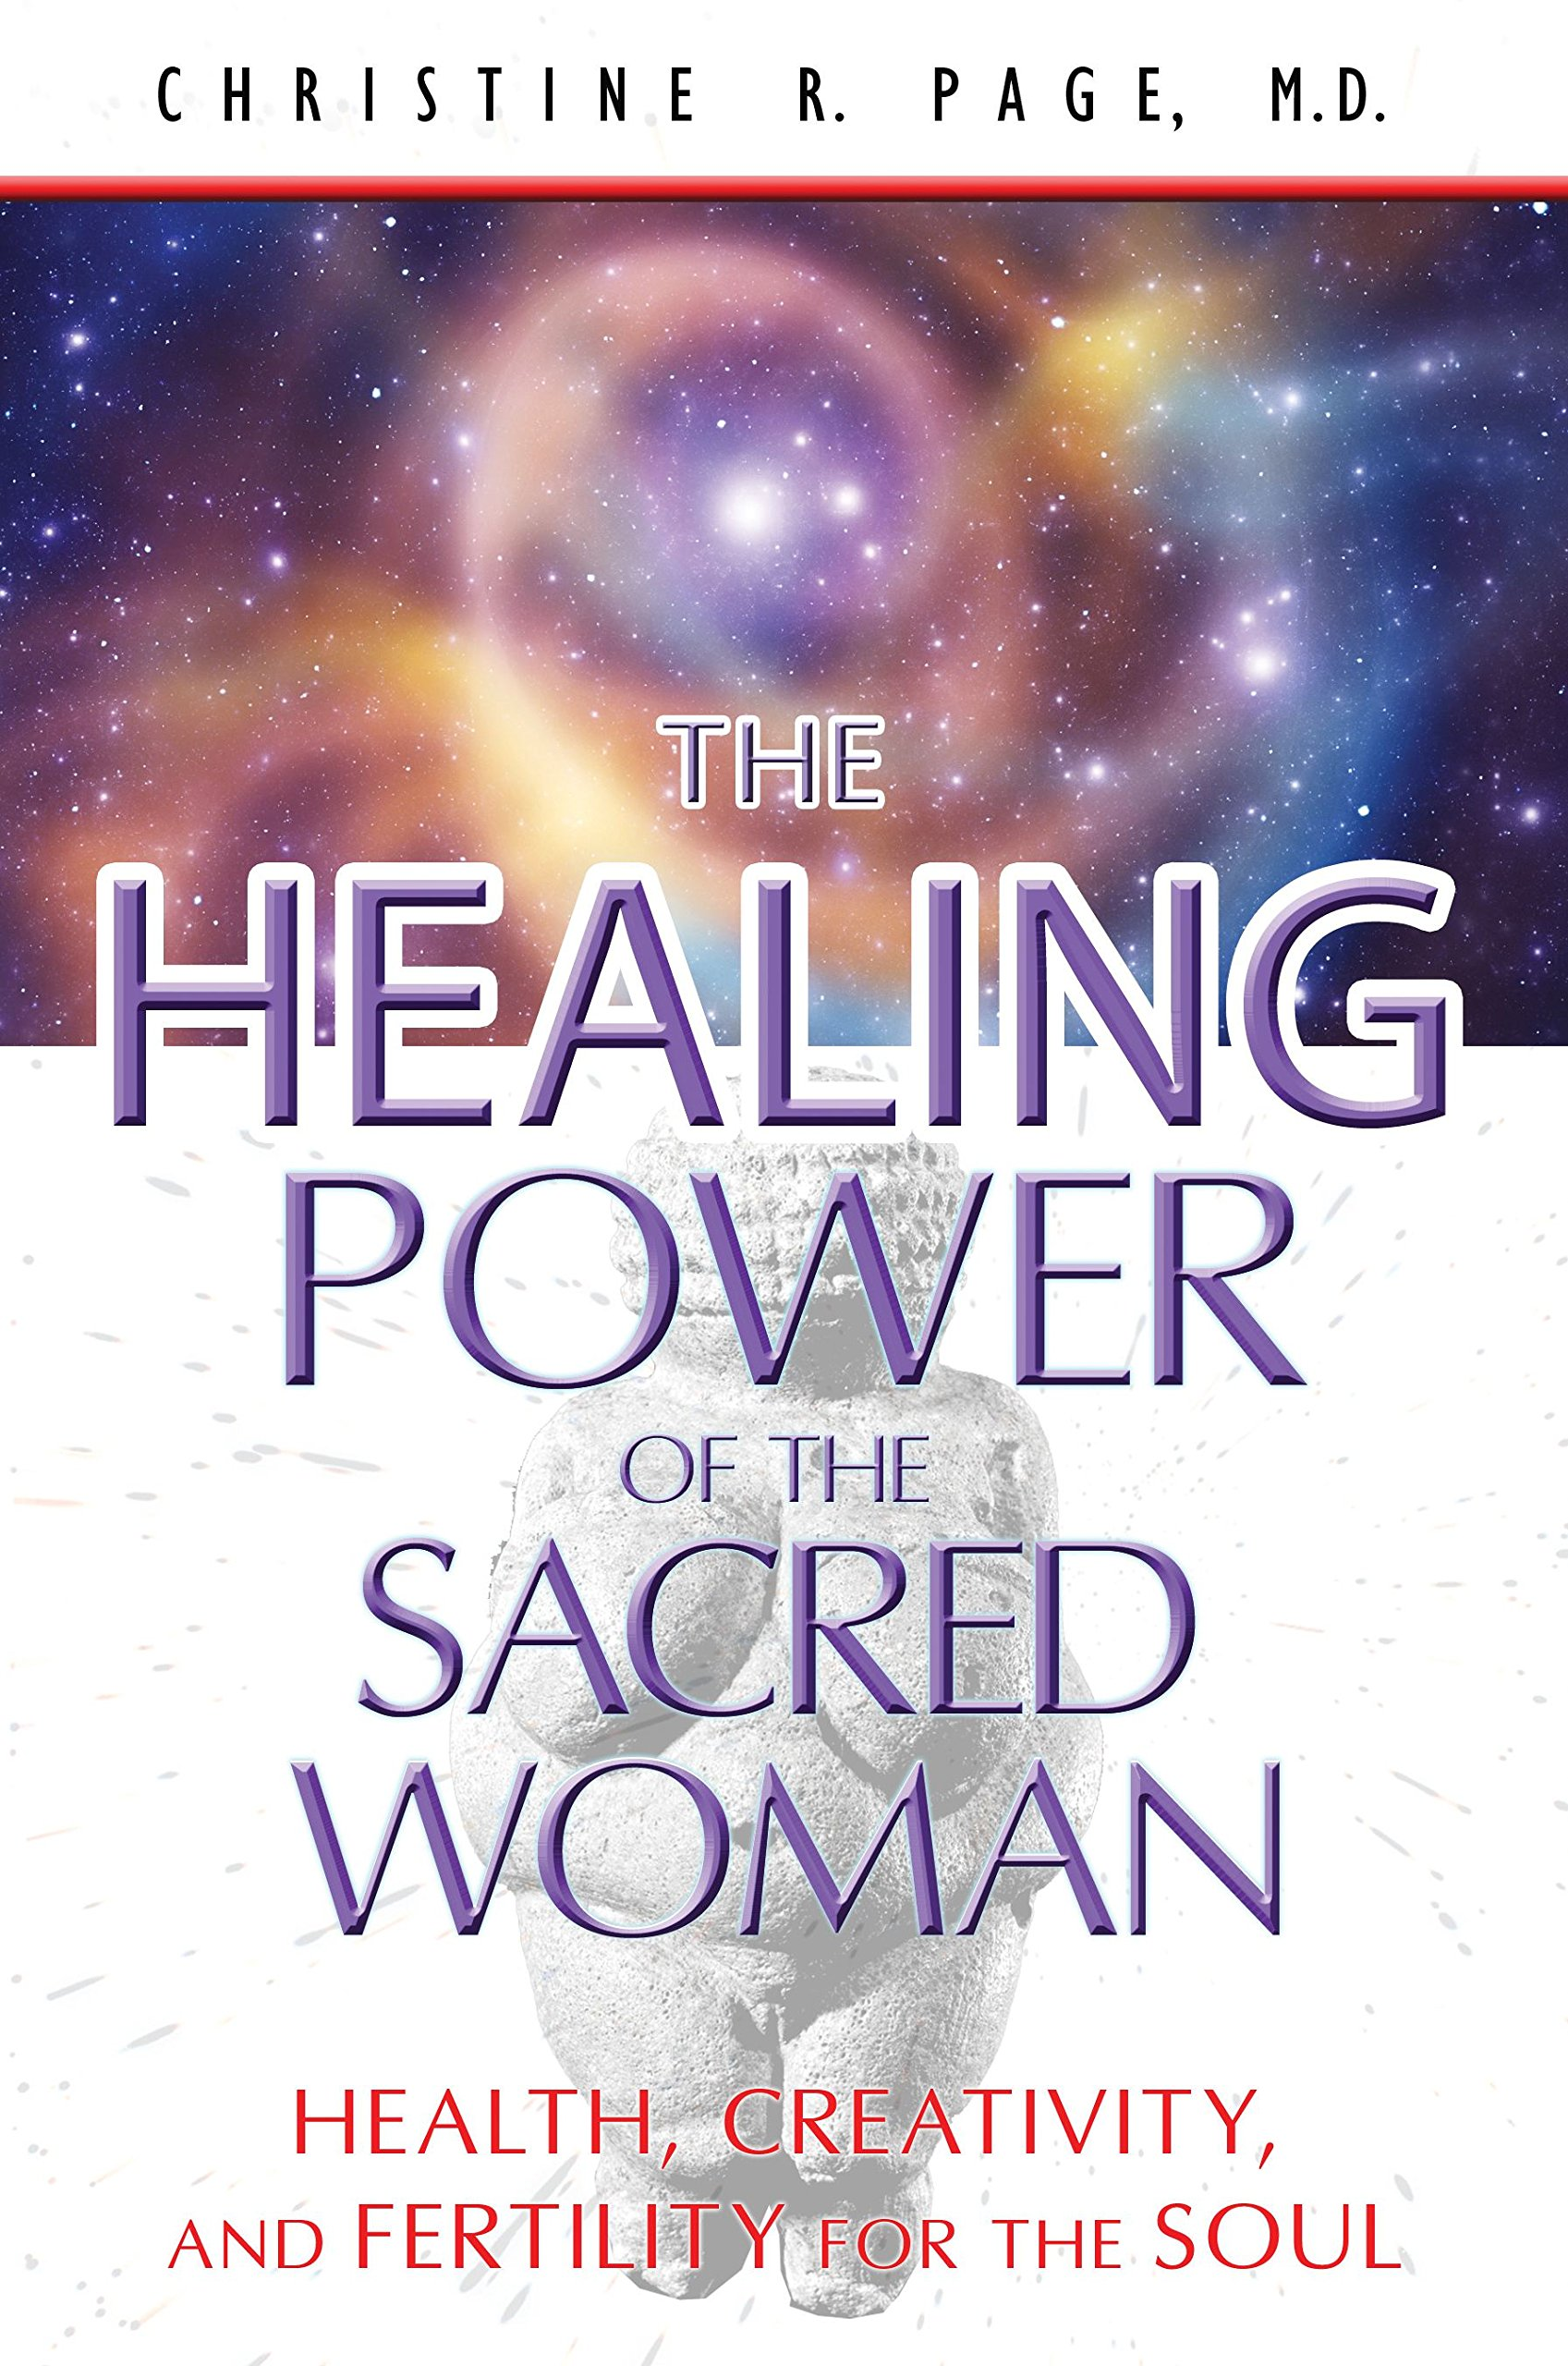 Powers of Two: The Creative and Healing Energy of a Pair